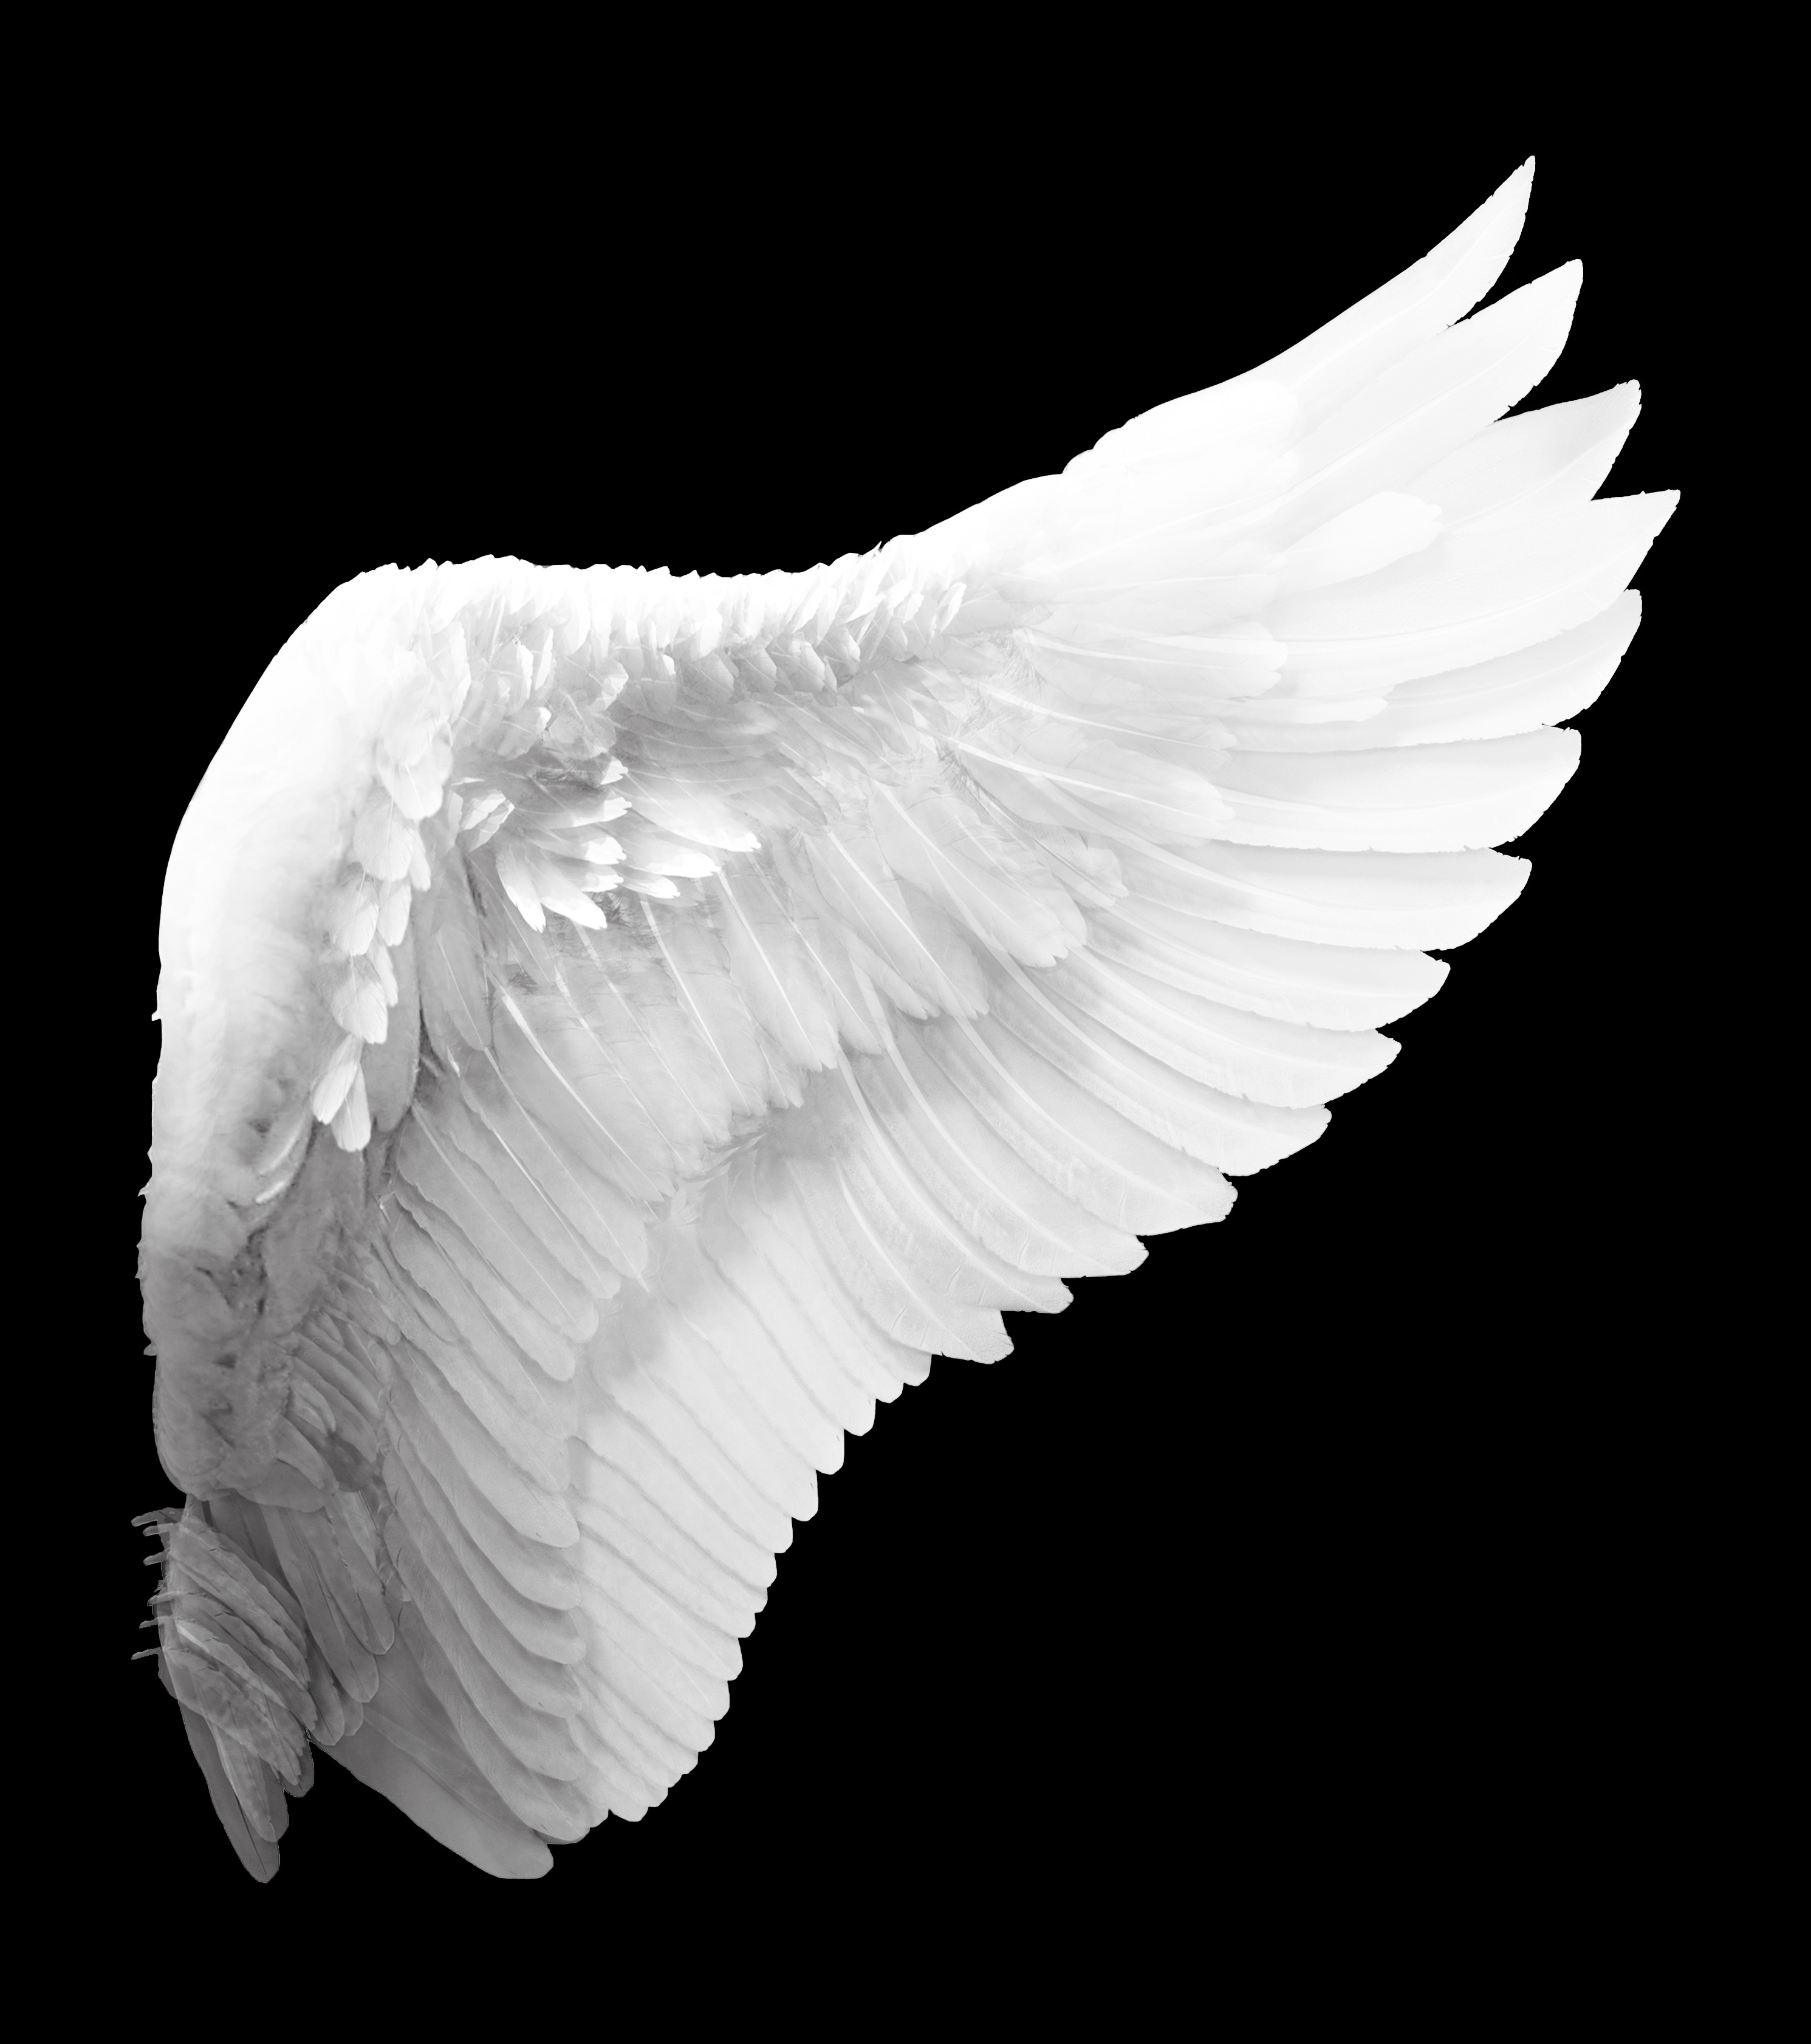 White Angel Wing, Wing, White, Feathers, Angel, HQ Photo